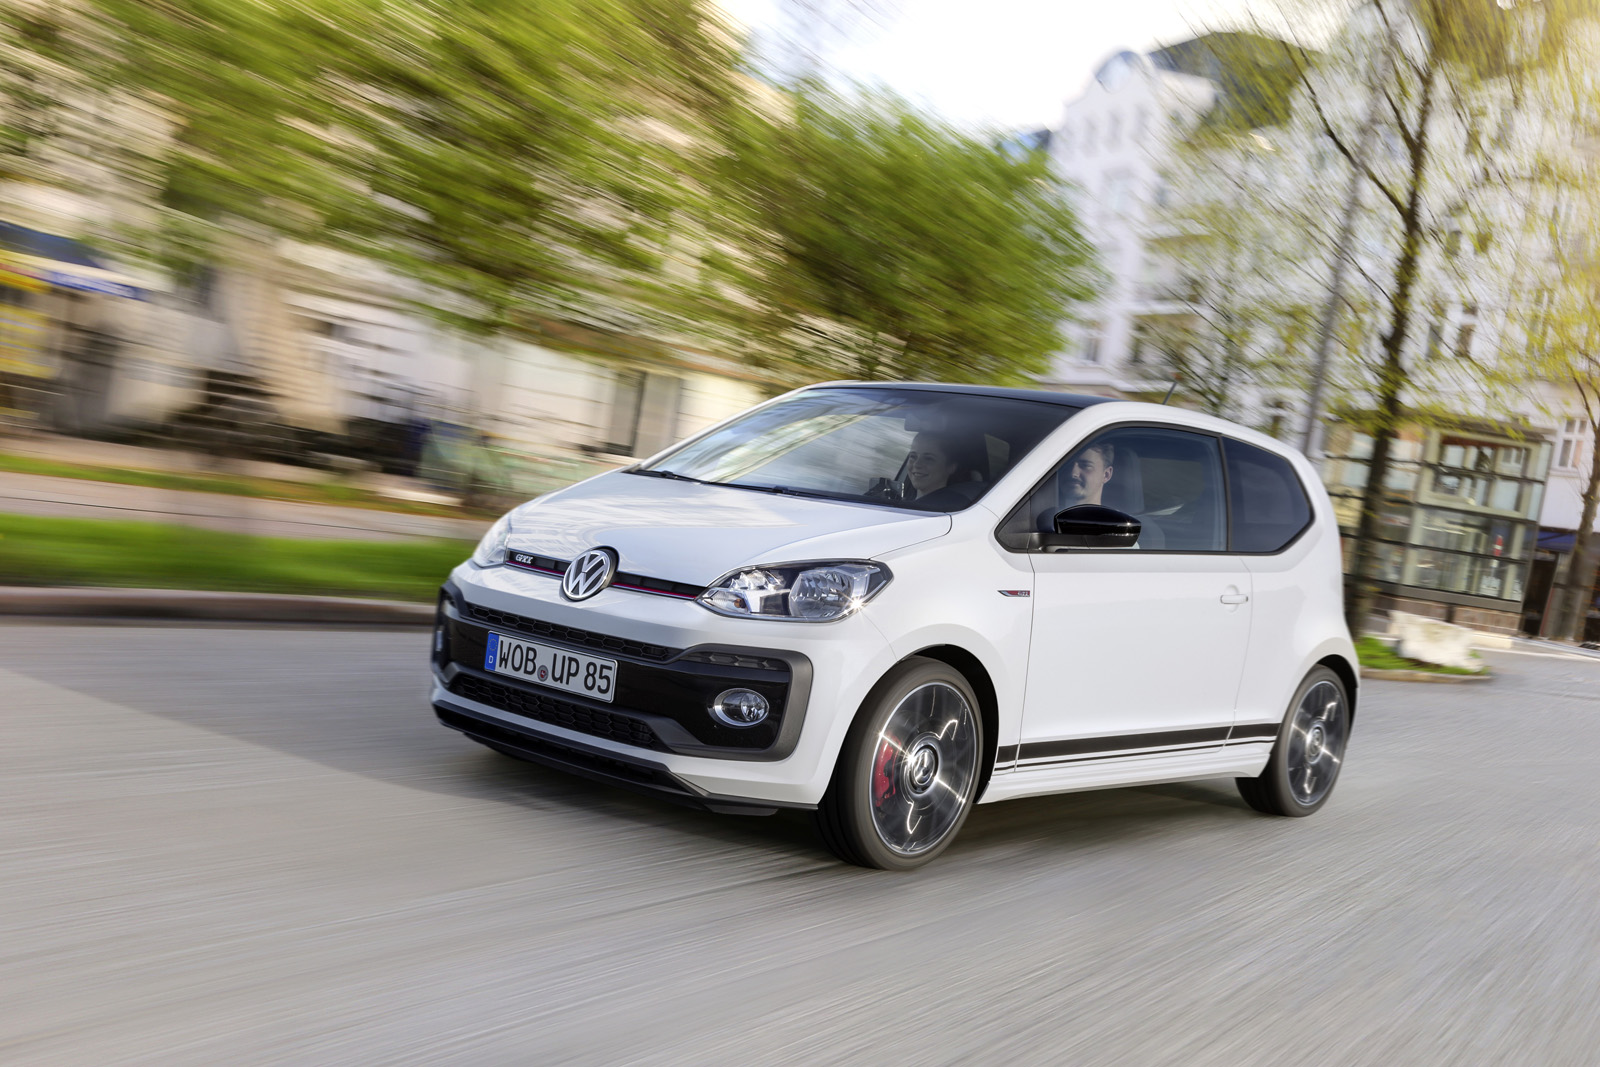 Volkswagen Up GTI Revealed - The Hot Hatch That India Deserves!